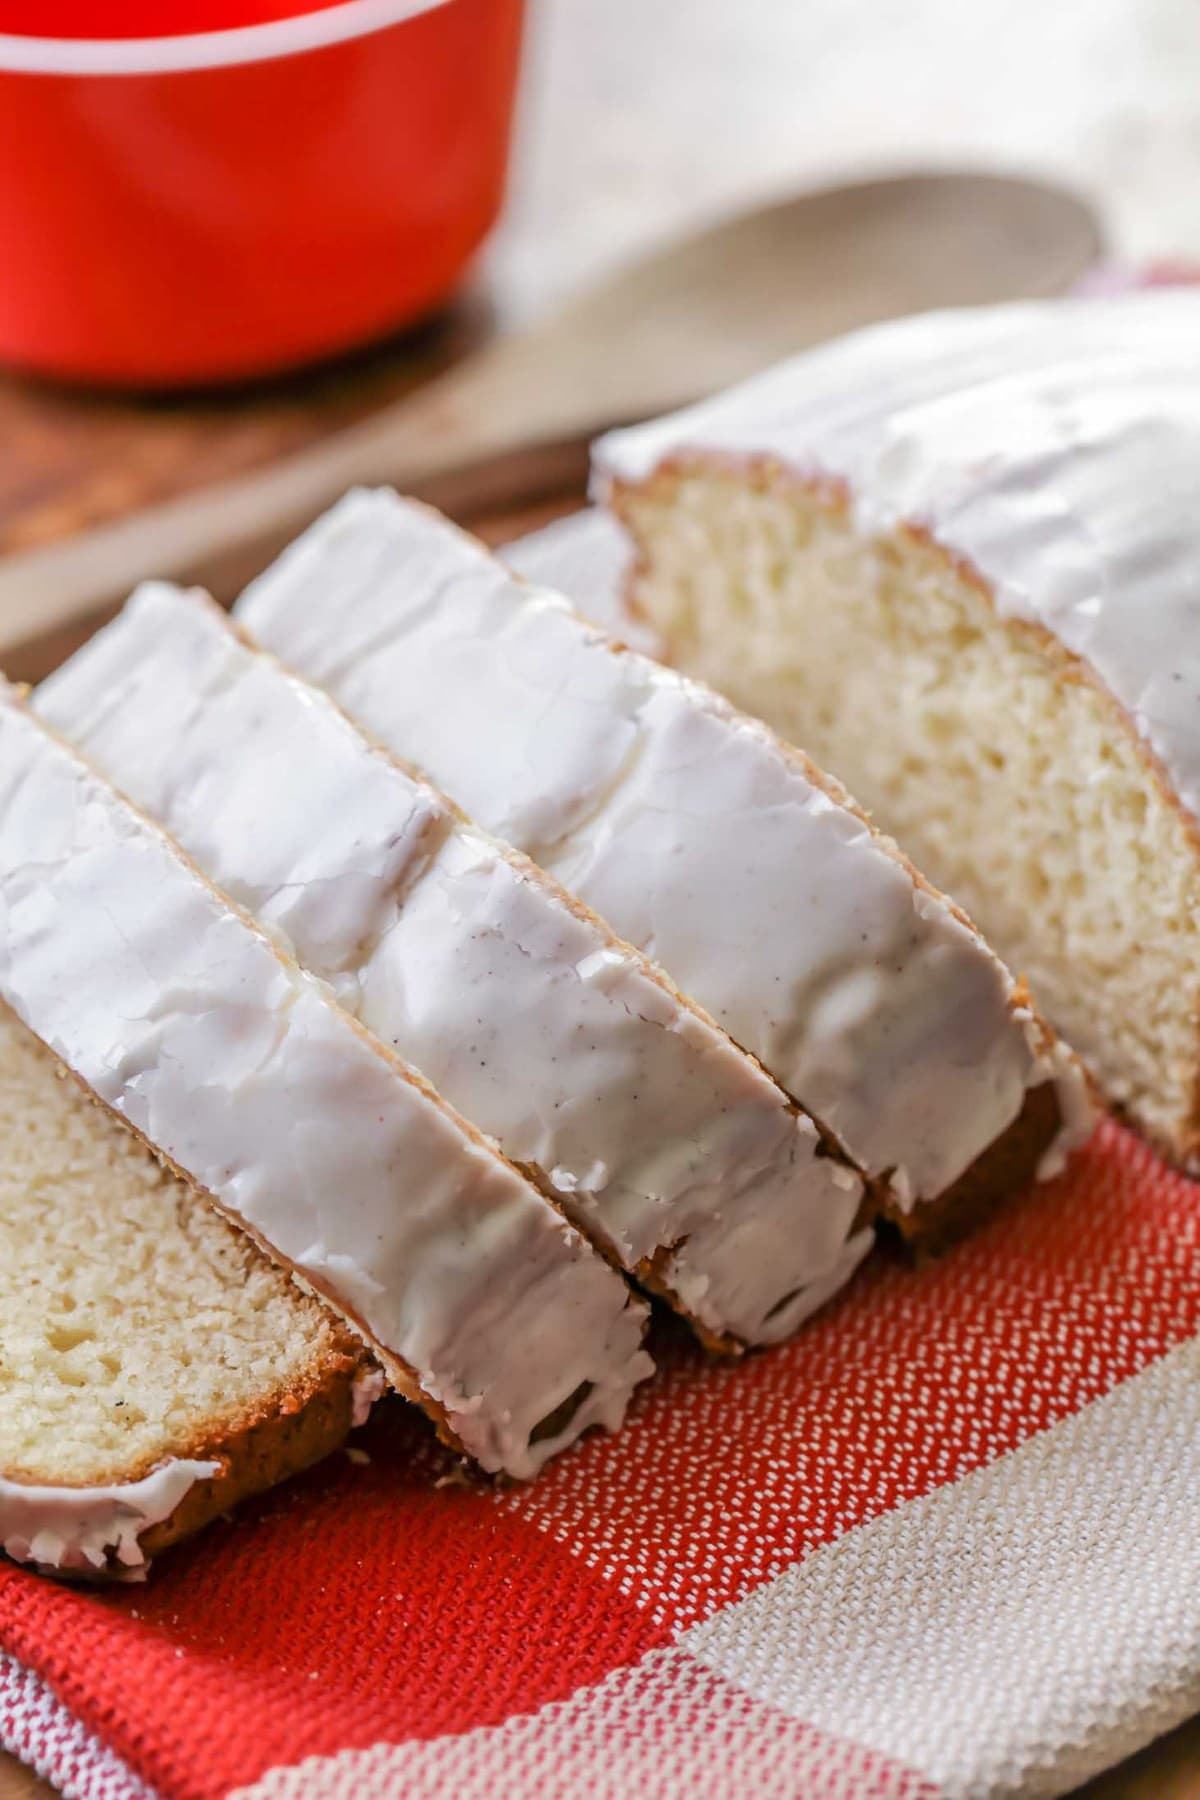 Delicious Eggnog Bread with Glaze recipe - Super moist bread filled with eggnog, nutmeg, and white chocolate pudding mix!!